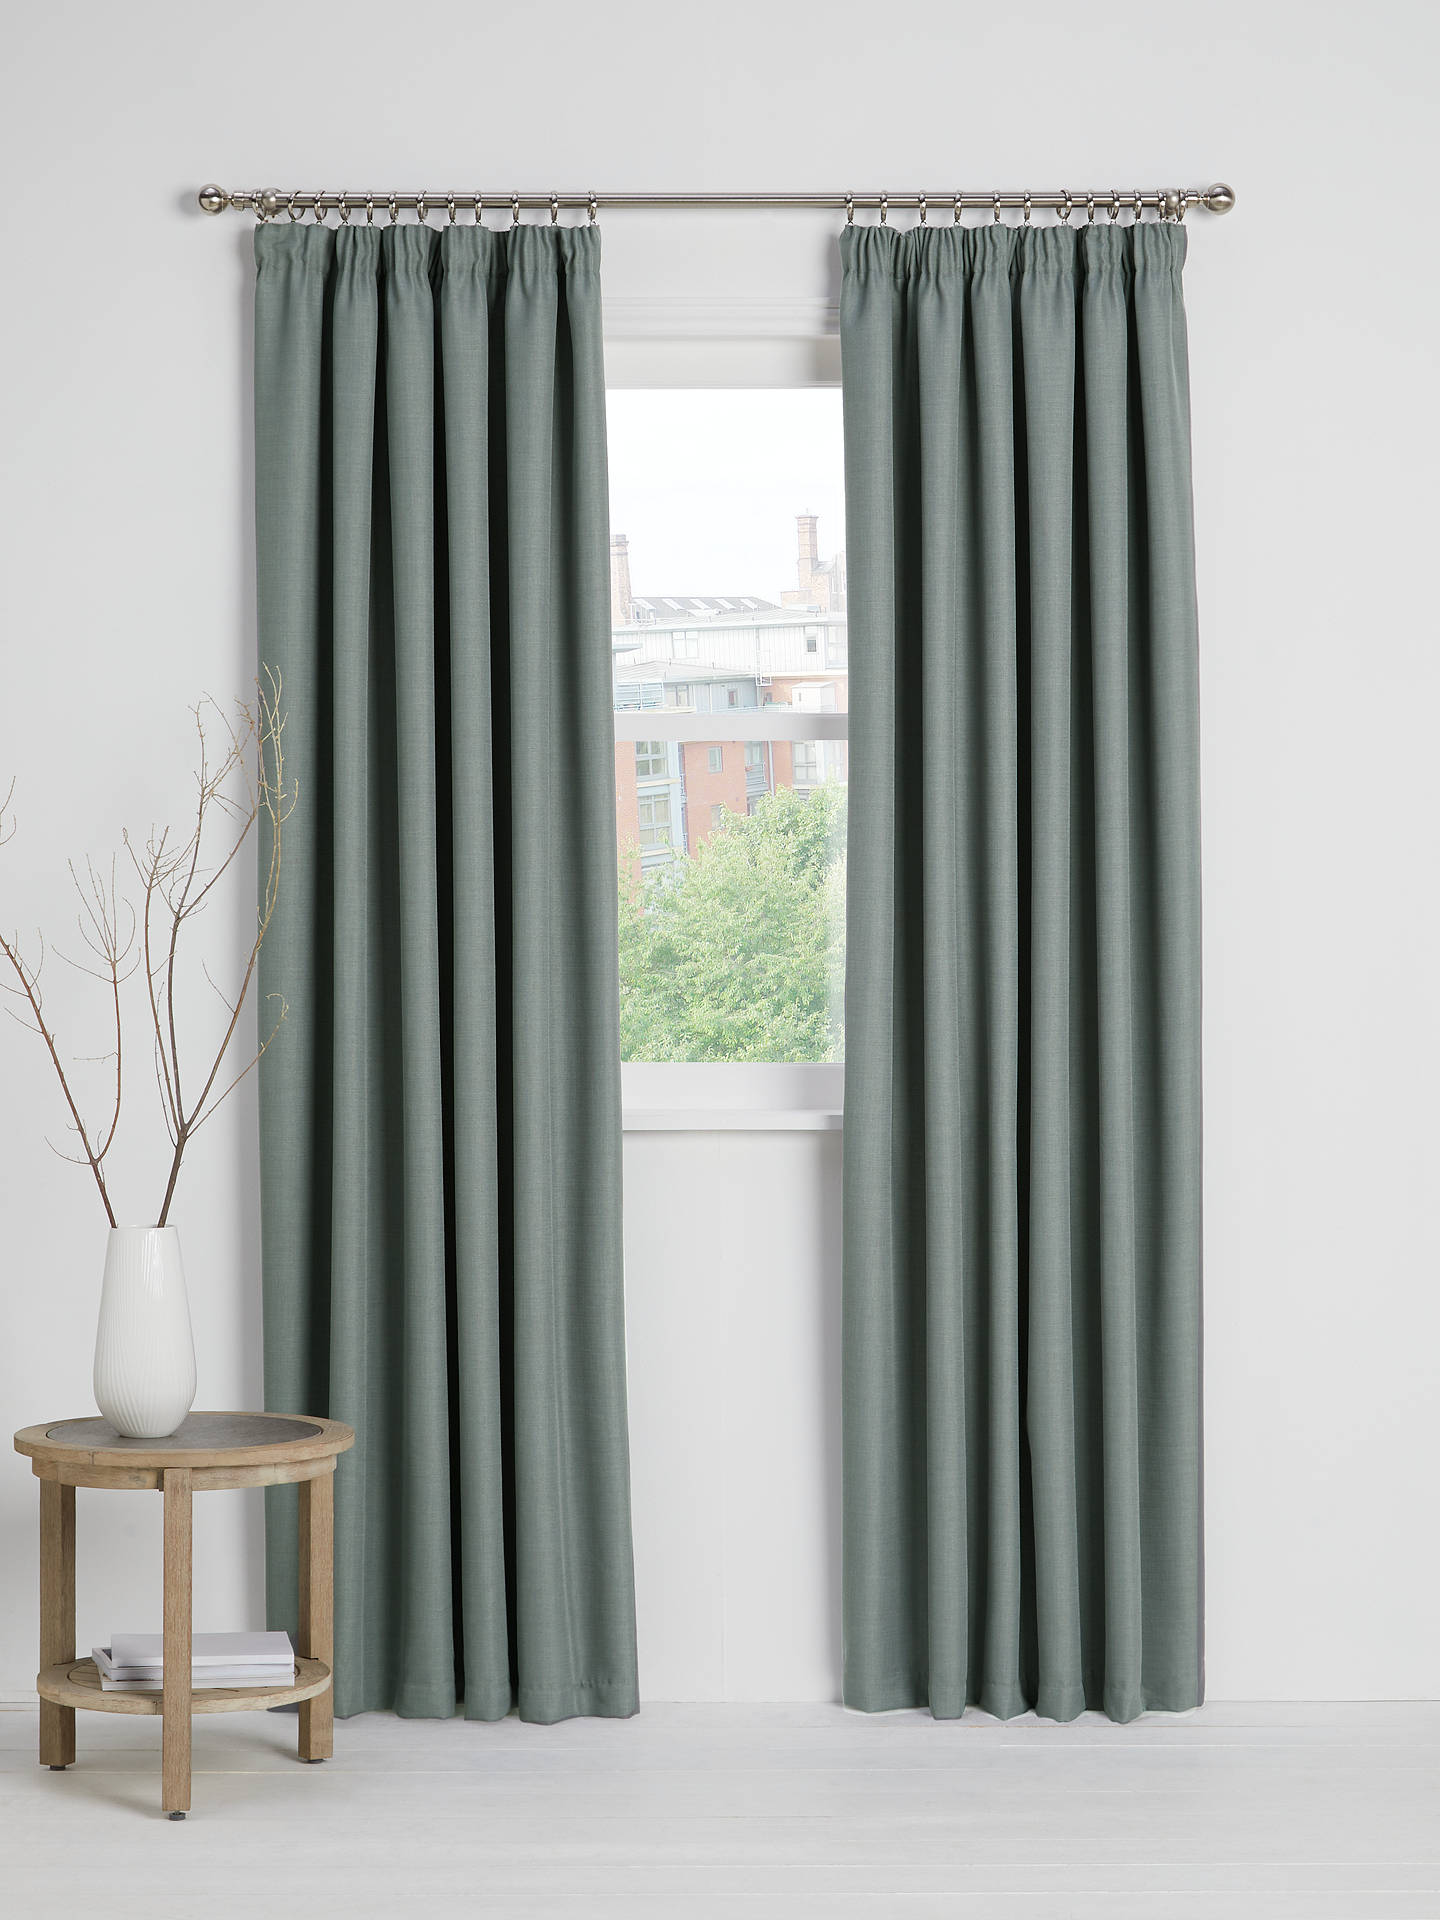 Buy John Lewis & Partners Barathea Pair Blackout Lined Pencil Pleat Curtains, Mid Grey, W117 x Drop 137cm Online at johnlewis.com